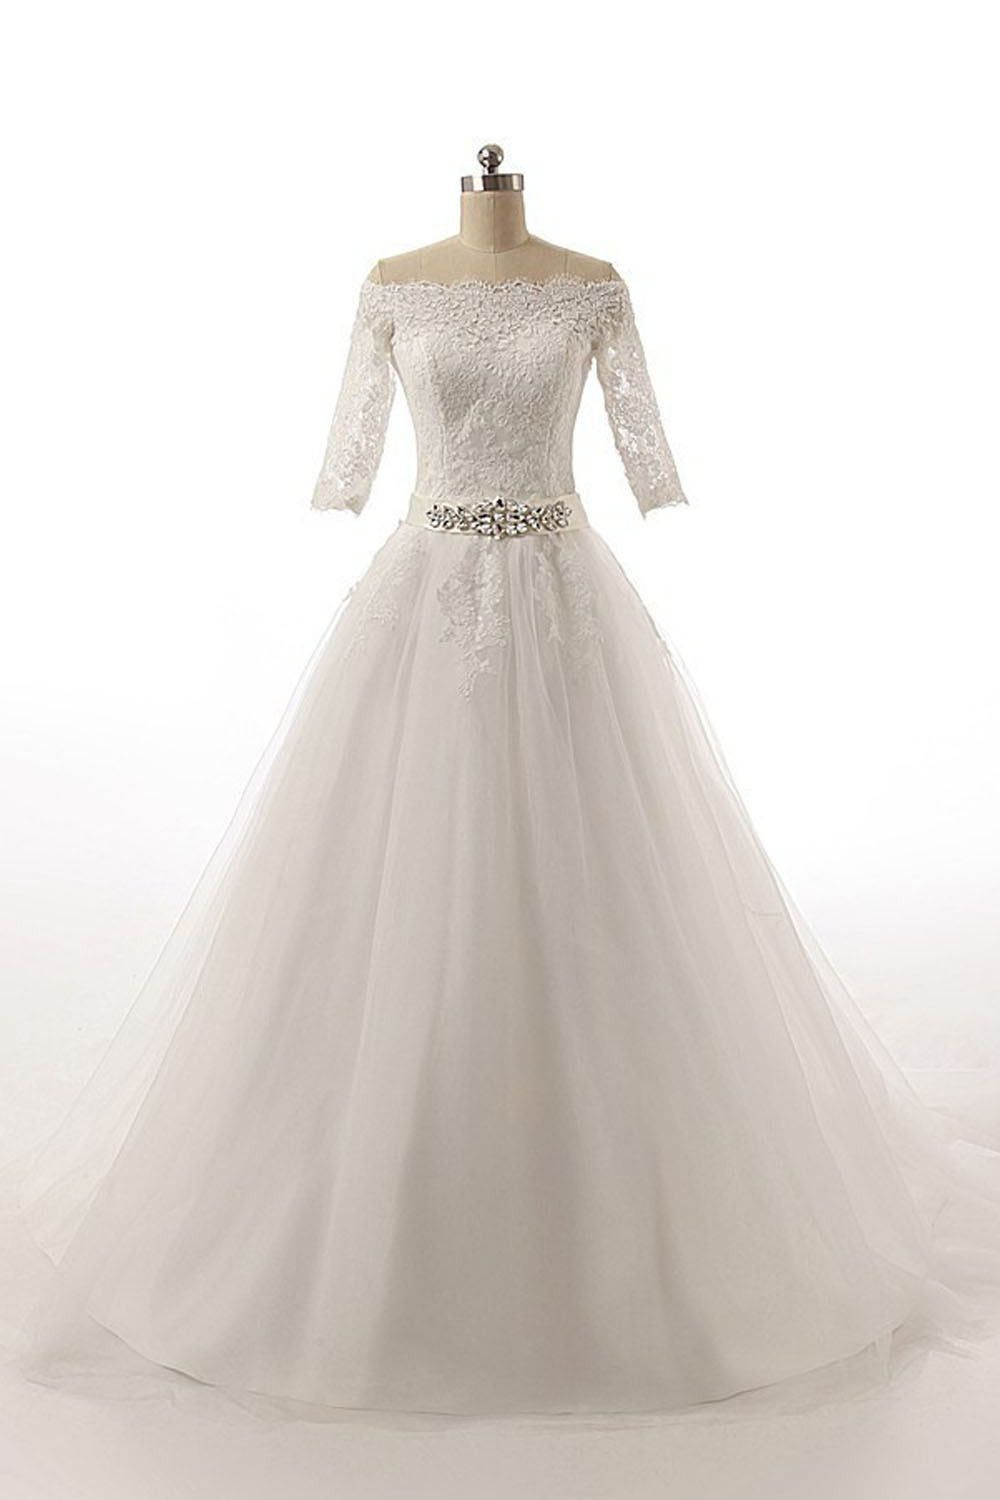 Half sleeves long ball gowns bodice lace wedding dresses w